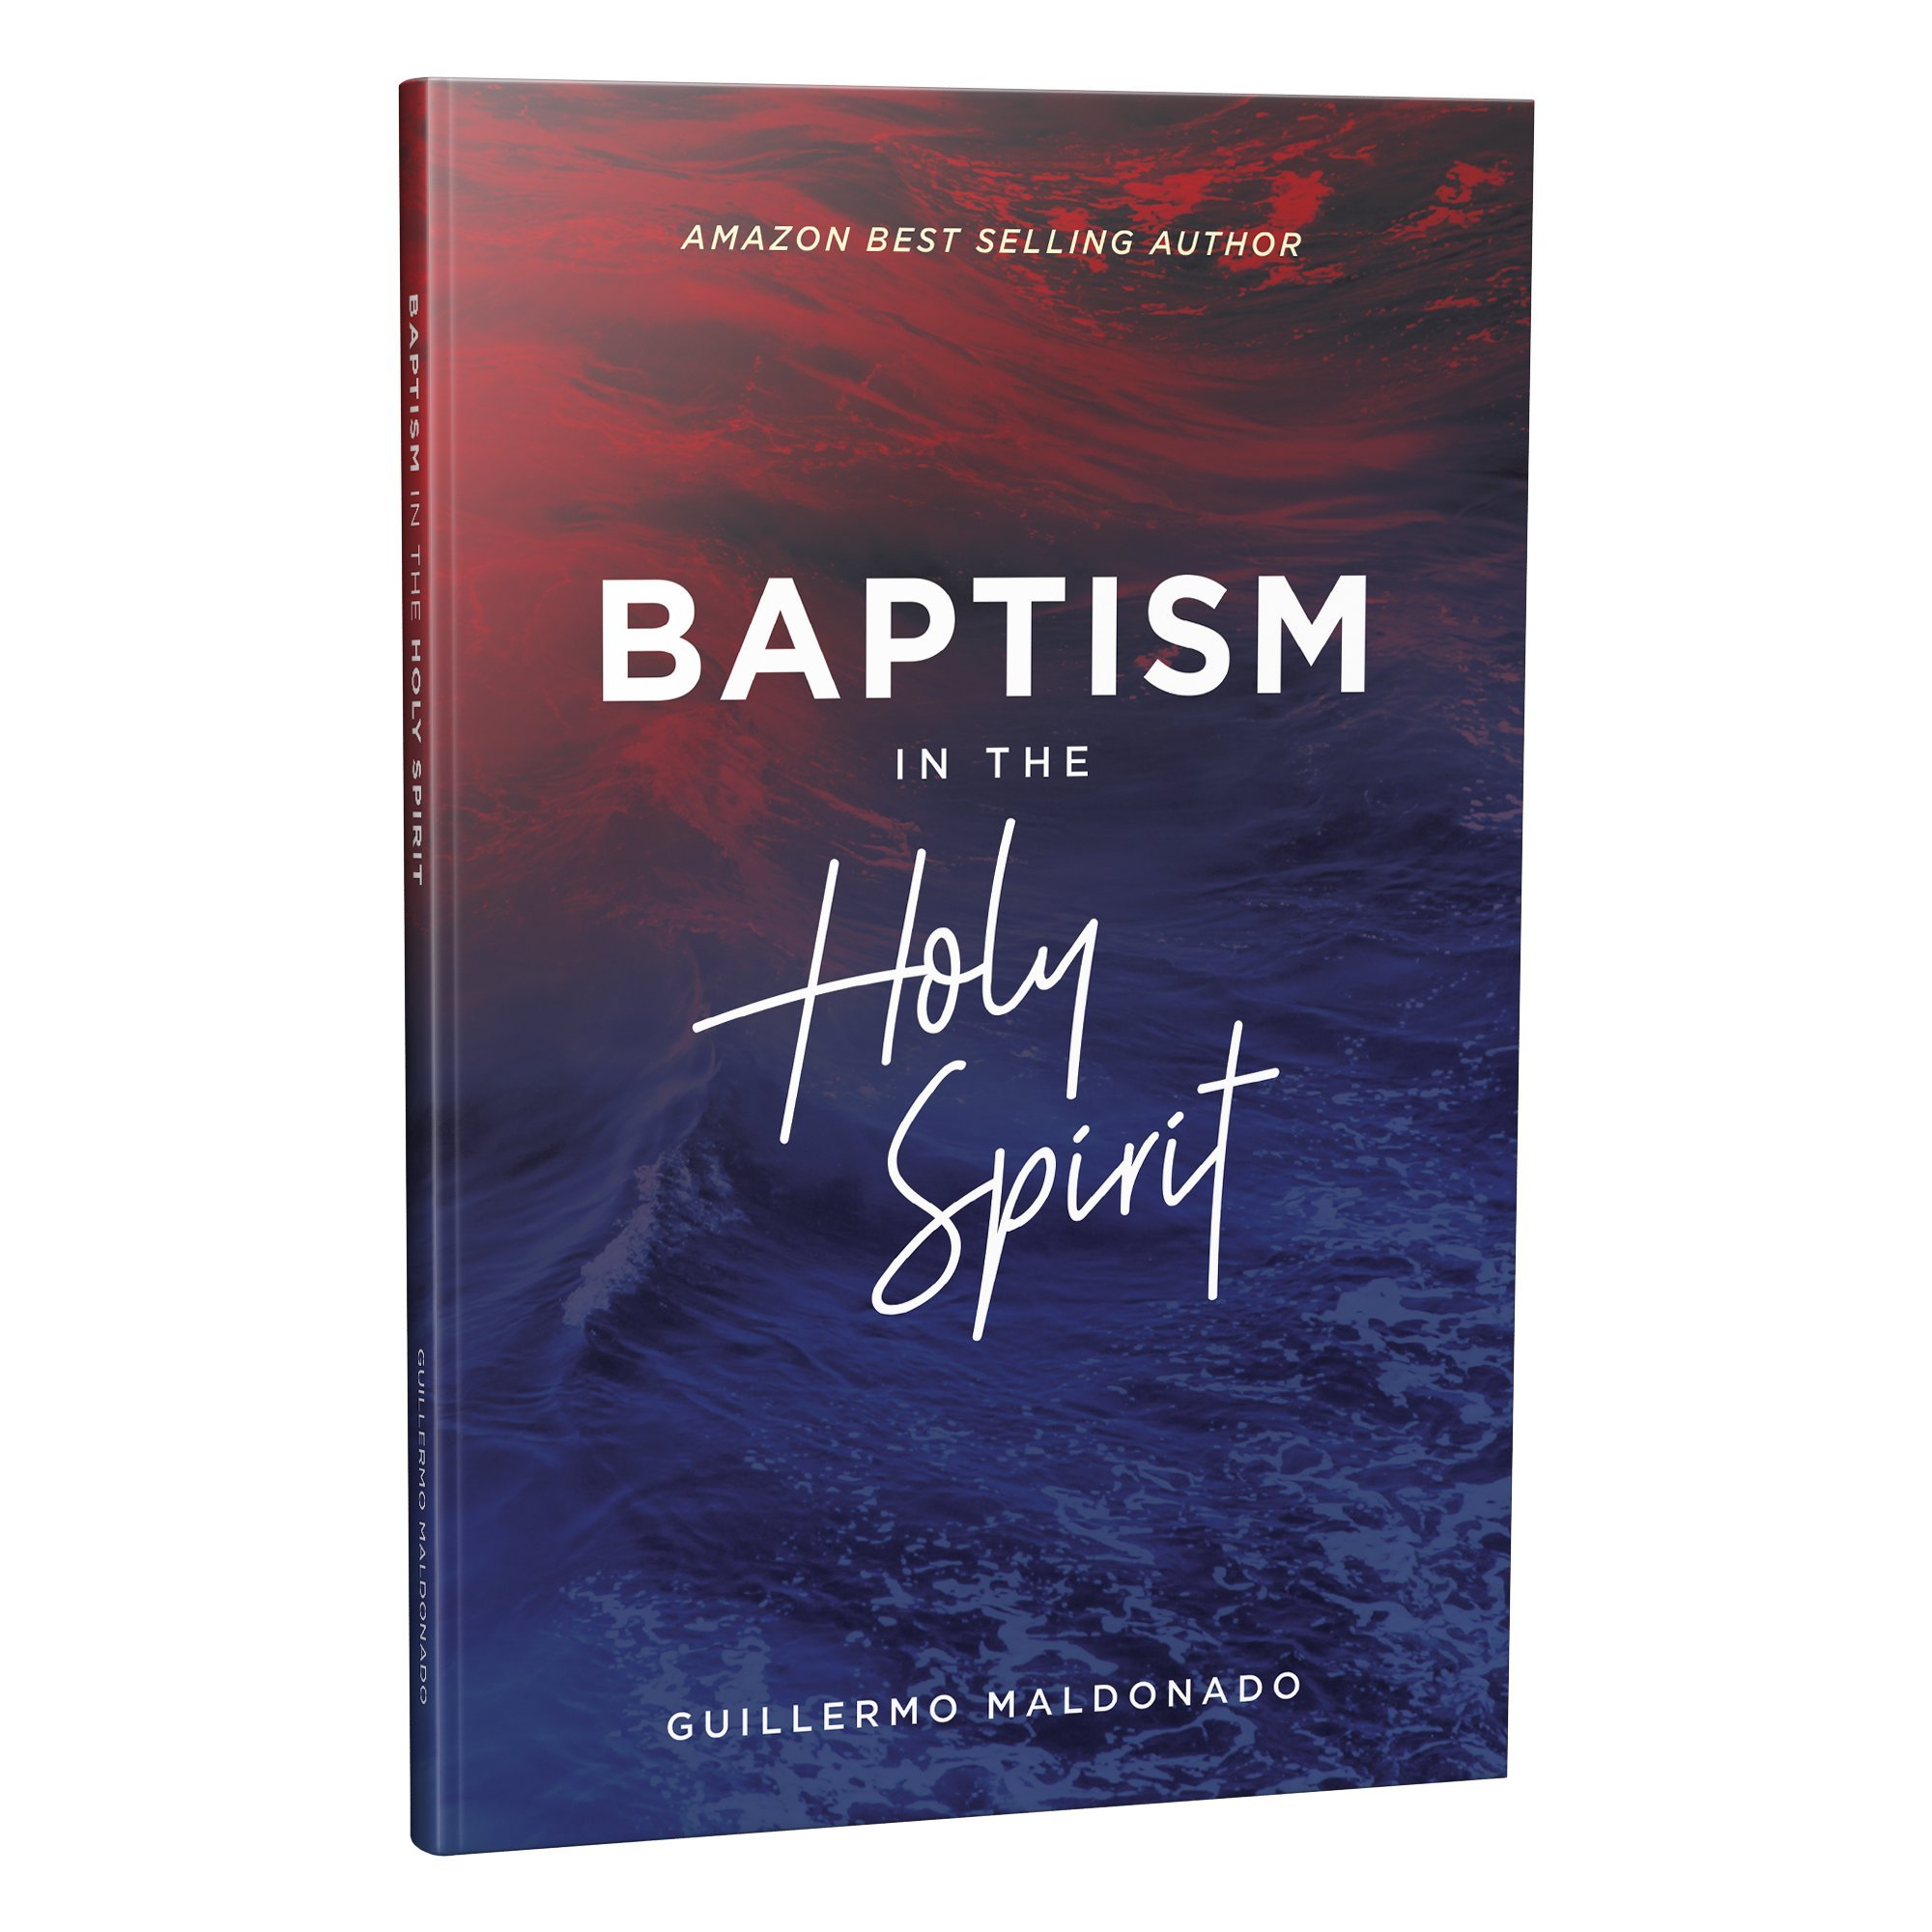 Youth activities holy spirit ebook array baptism in the holy spirit guillermo maldonado 9781592727155 rh amazon com fandeluxe Image collections